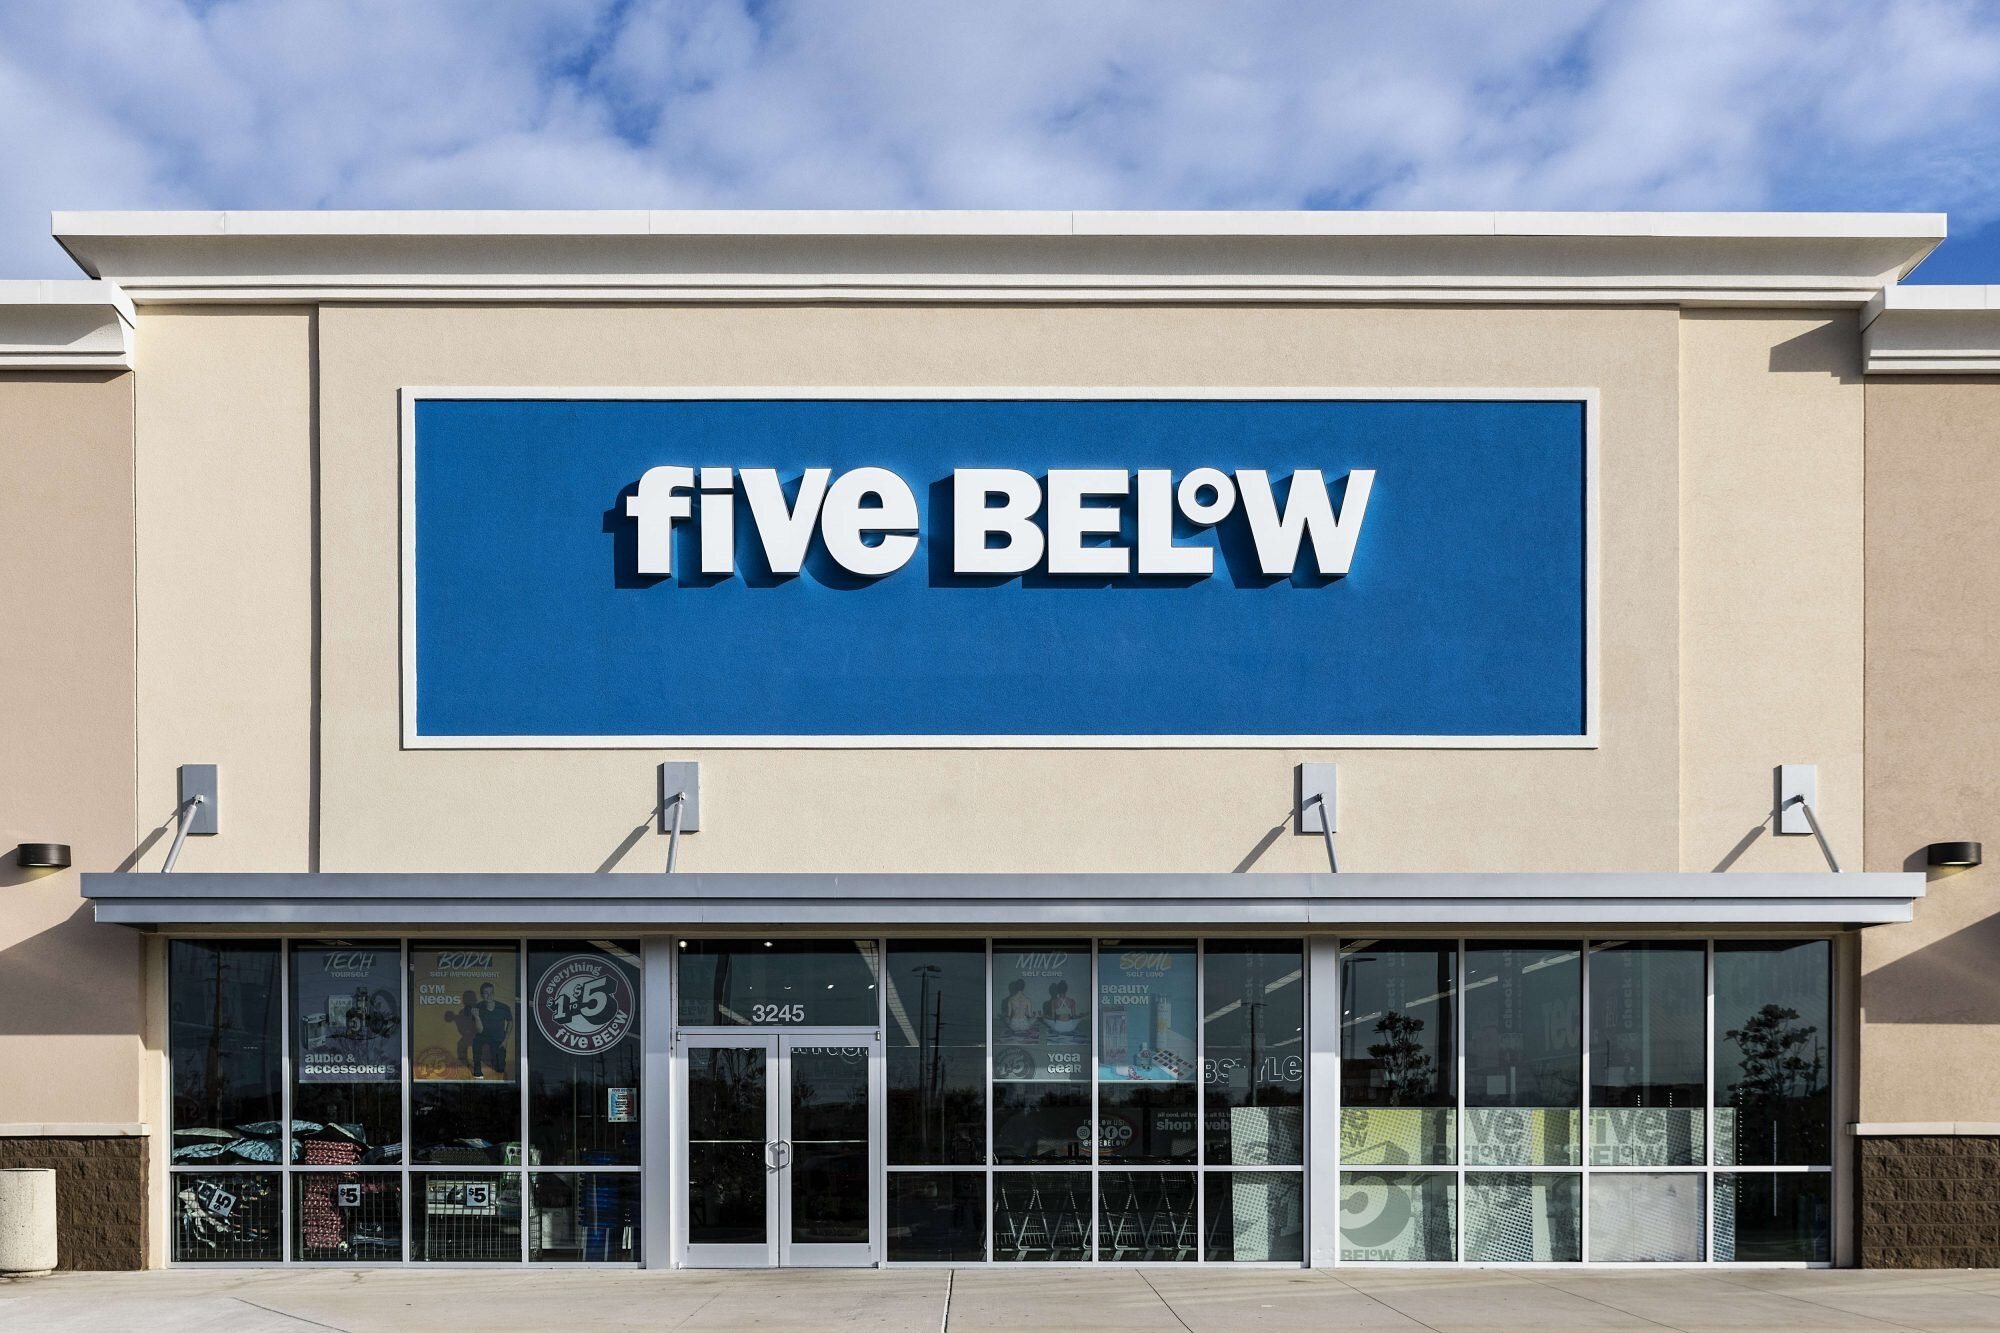 3 Questions That Five Below Needs to Answer